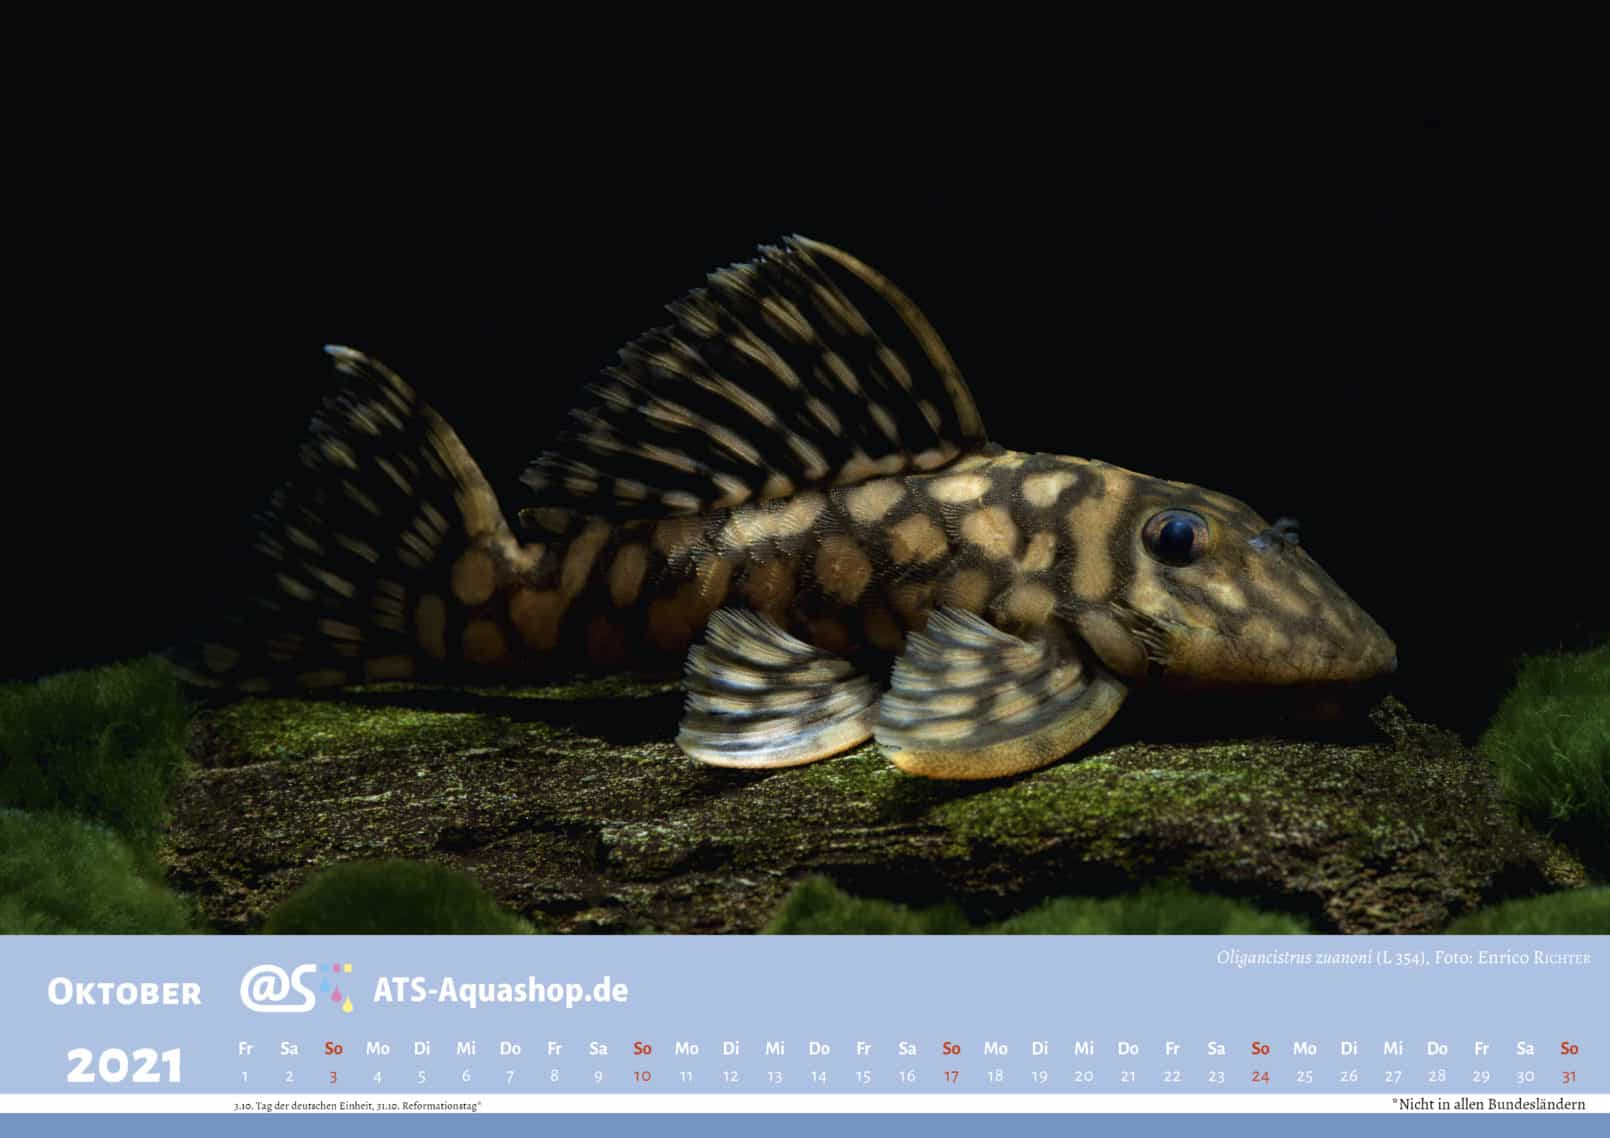 Photo calendar for the year 2021 DIN A3 (September): Oligancistrus zuanoni (L 20) / Spectracanthicus zuanoni (L 20)